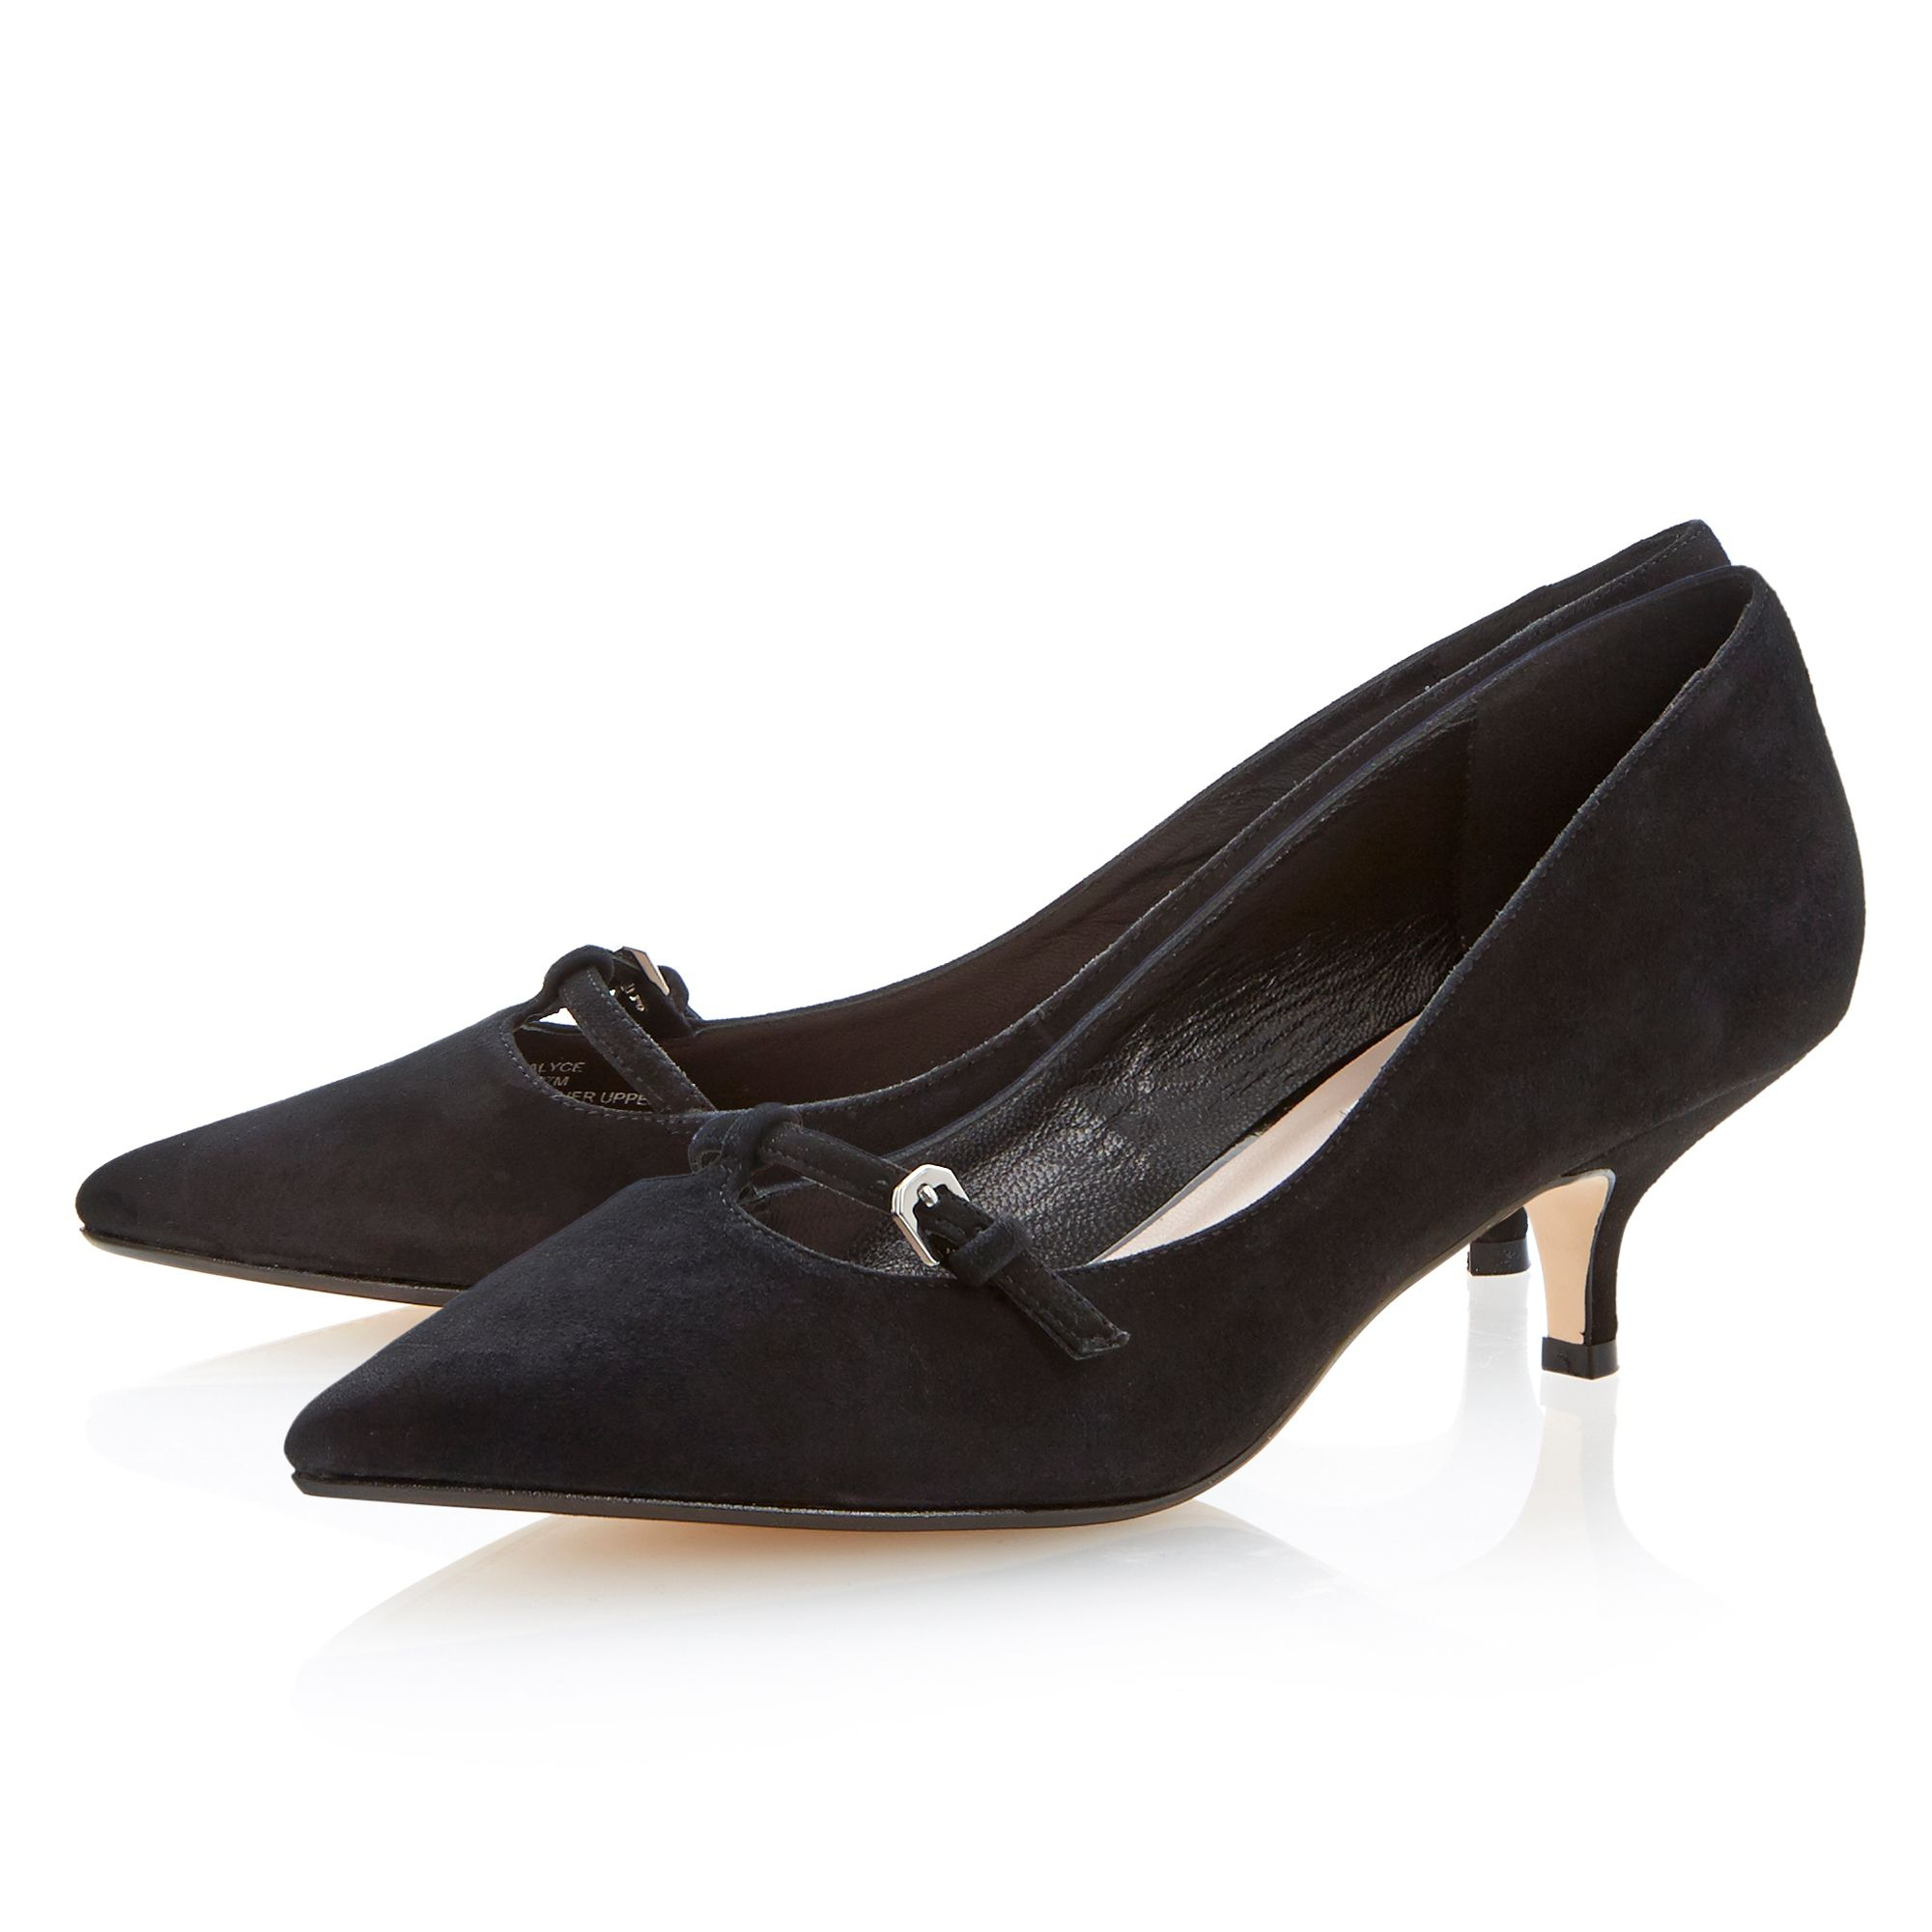 Dune Alyce Suede Pointed Toe Kitten Heel Shoes in Black  Lyst